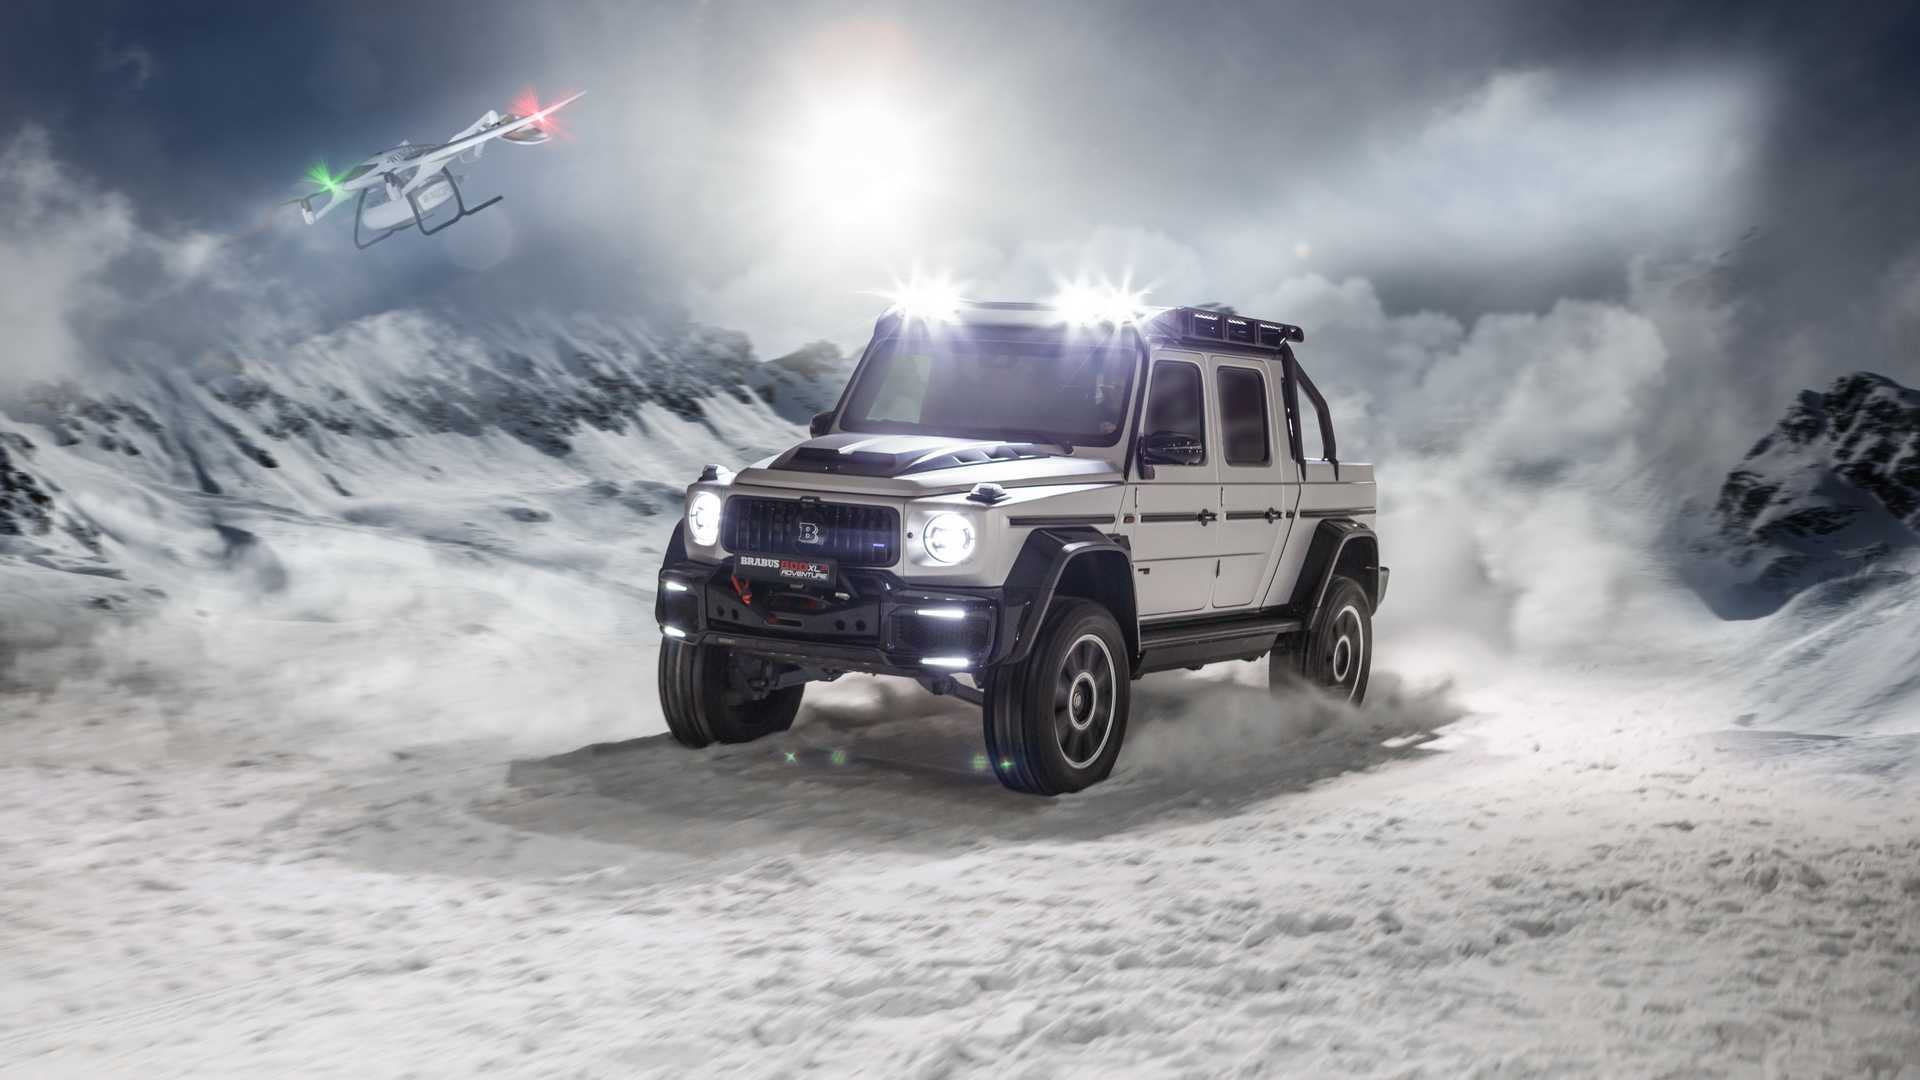 The sudden explosion of Covid-19 in March put a lid on this year's Geneva Motor Show, so Brabus never had the opportunity to properly present its extreme G-Class truck. Thankfully, half a year later the pickup made its way to Alex Hirschi, the famous Supercar Blondie, who finally gave it a detailed overview.